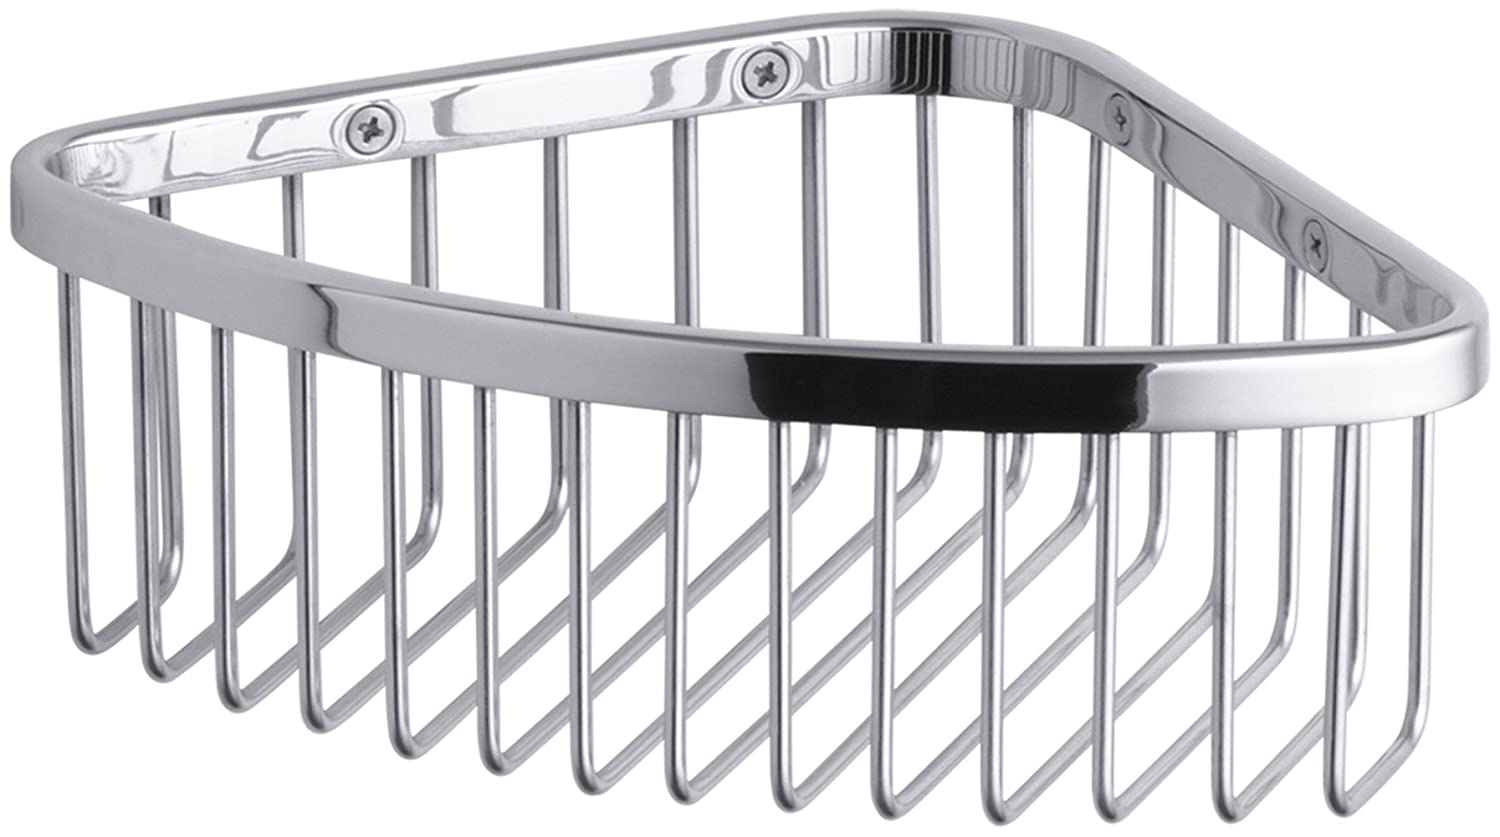 Amazon.com: KOHLER K-1896-S Medium Shower Basket, Polished Stainless ...